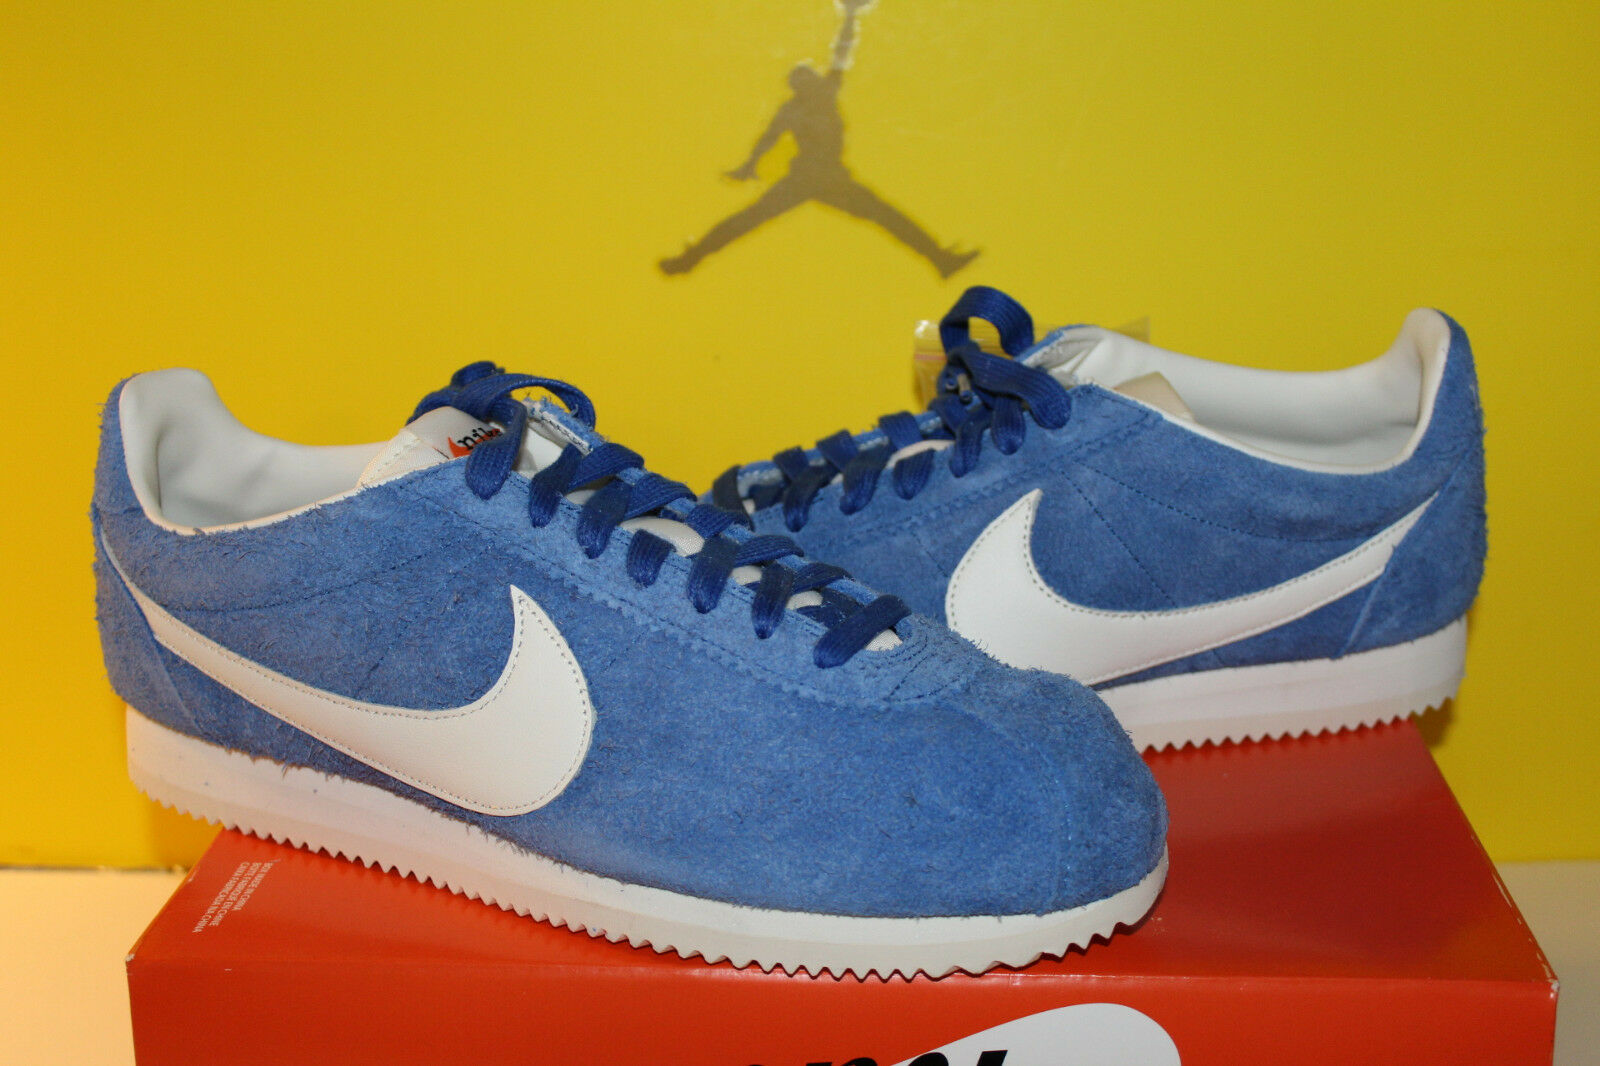 "Nike Classic Cortez X Kenny Moore QS "" Broken Foot "" Comfortable best-selling model of the brand"